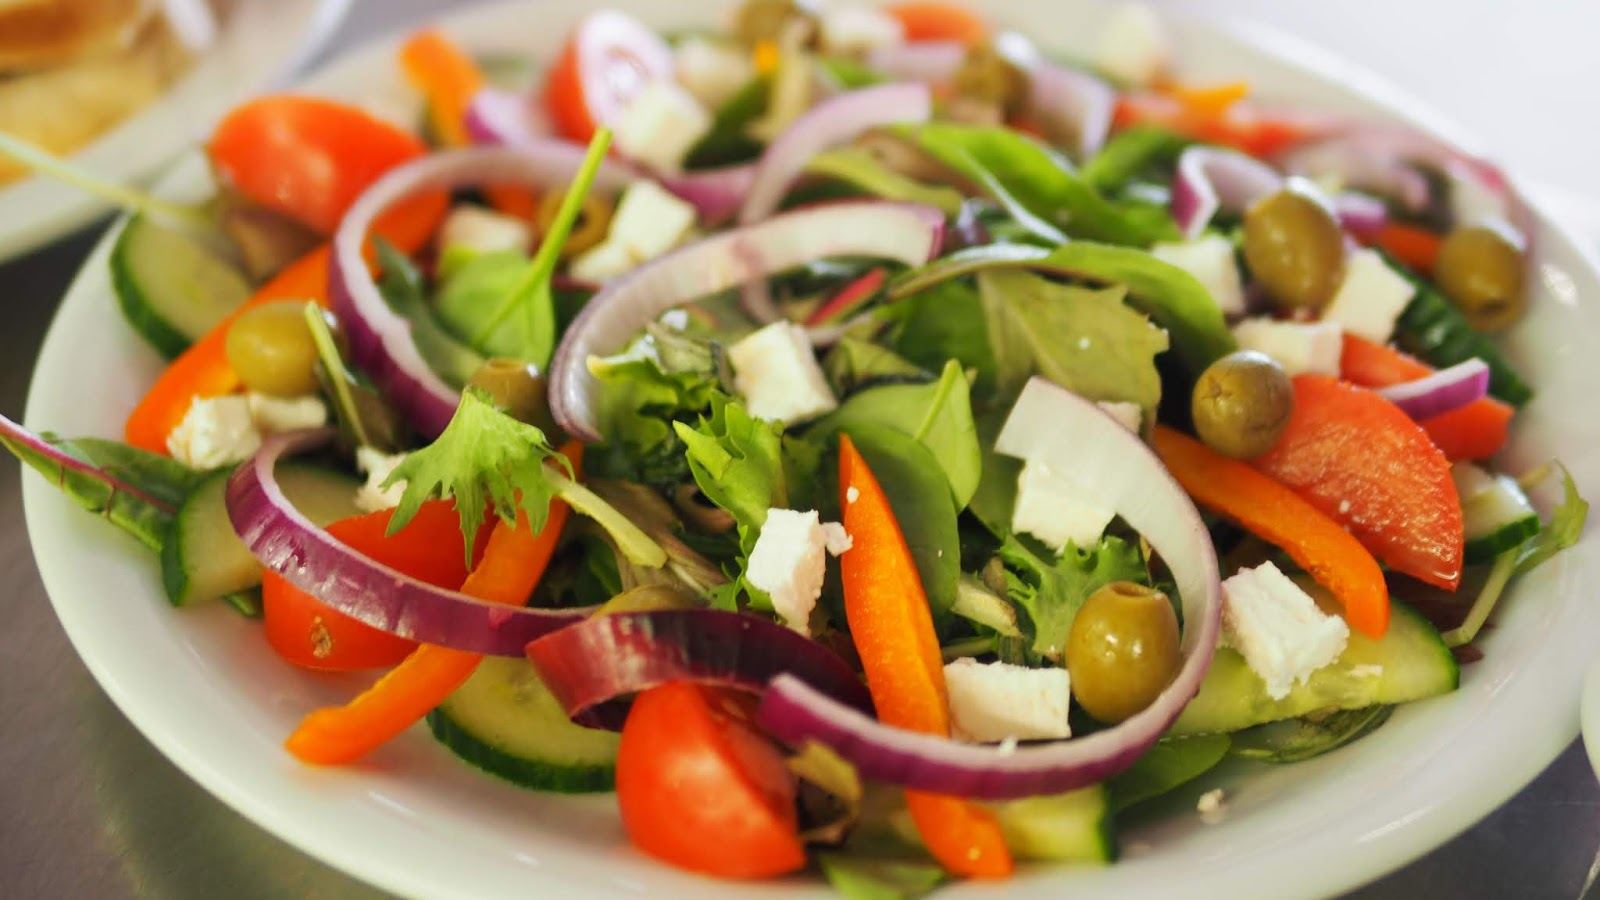 Eat Salad Daily - Facial Rejuvenation Begins with the Skin